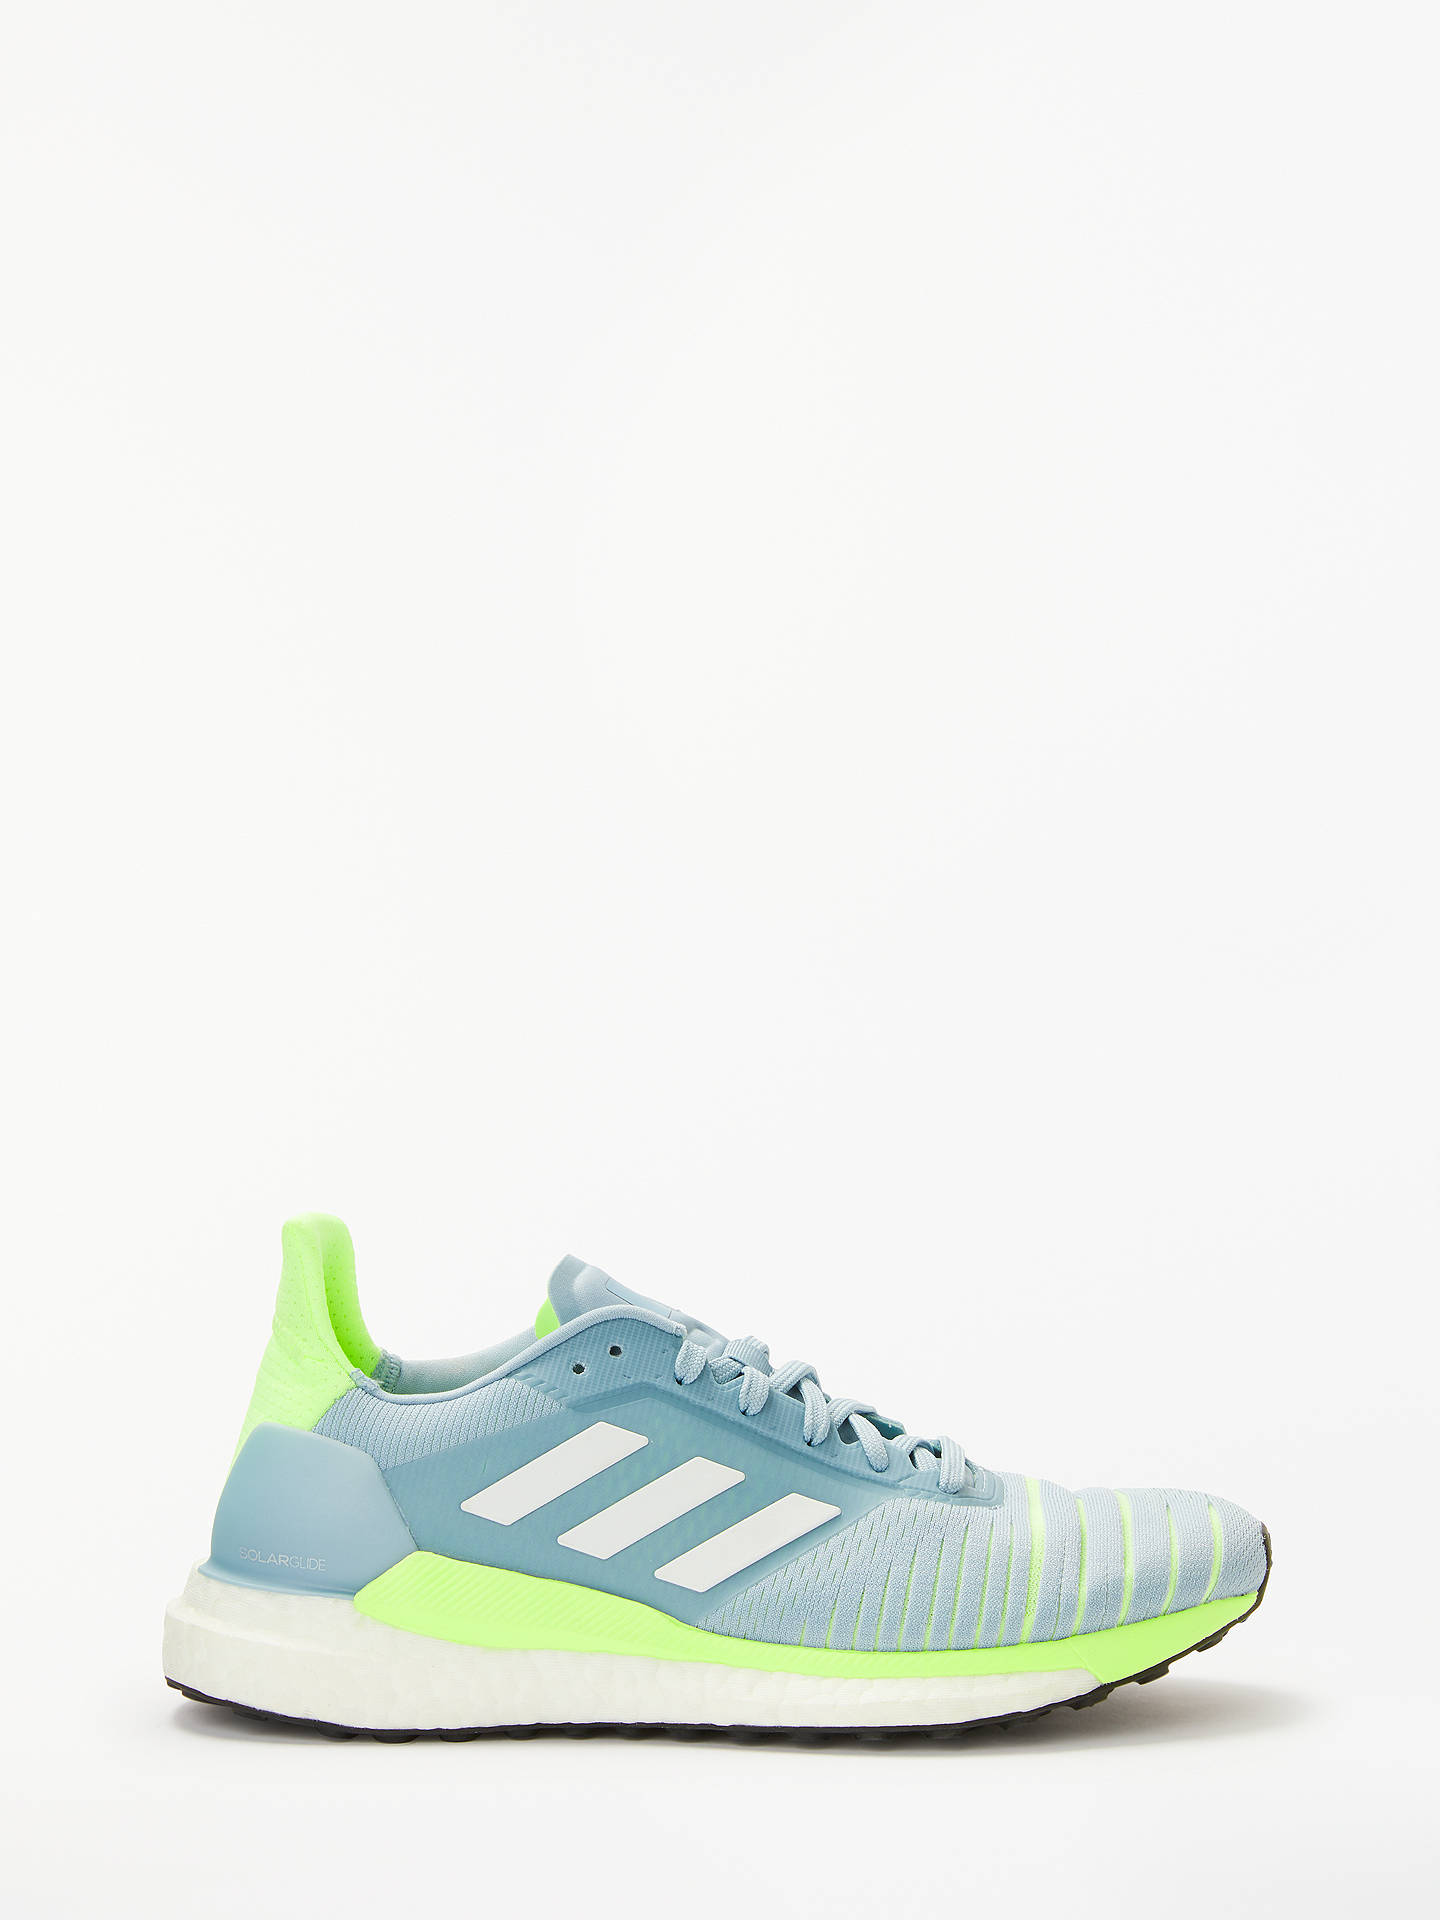 4456eeed6d935 adidas Solar Glide Women s Running Shoes at John Lewis   Partners